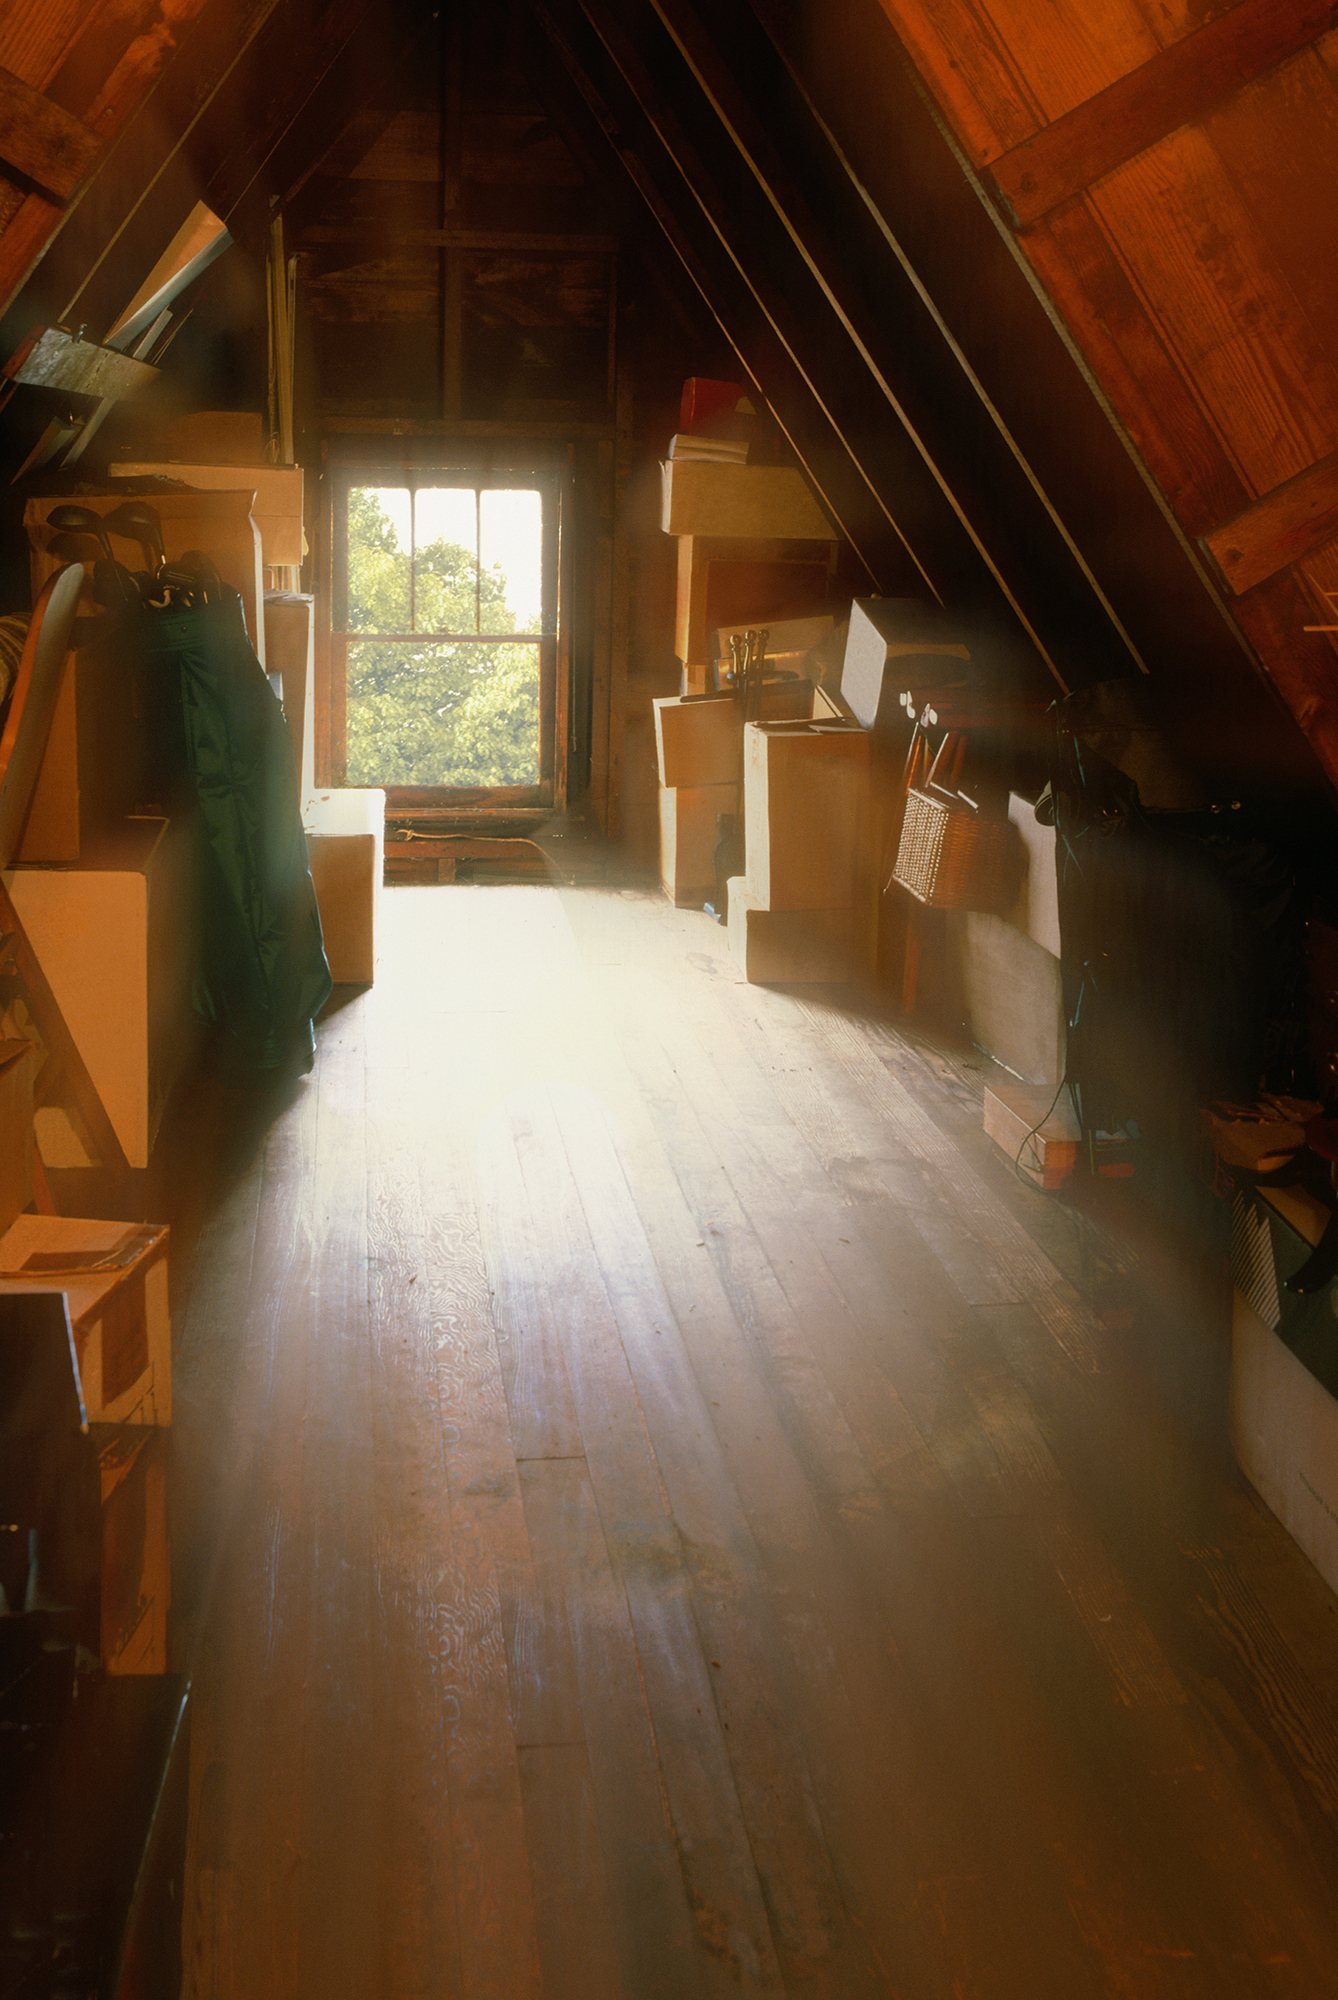 Attic with boxes